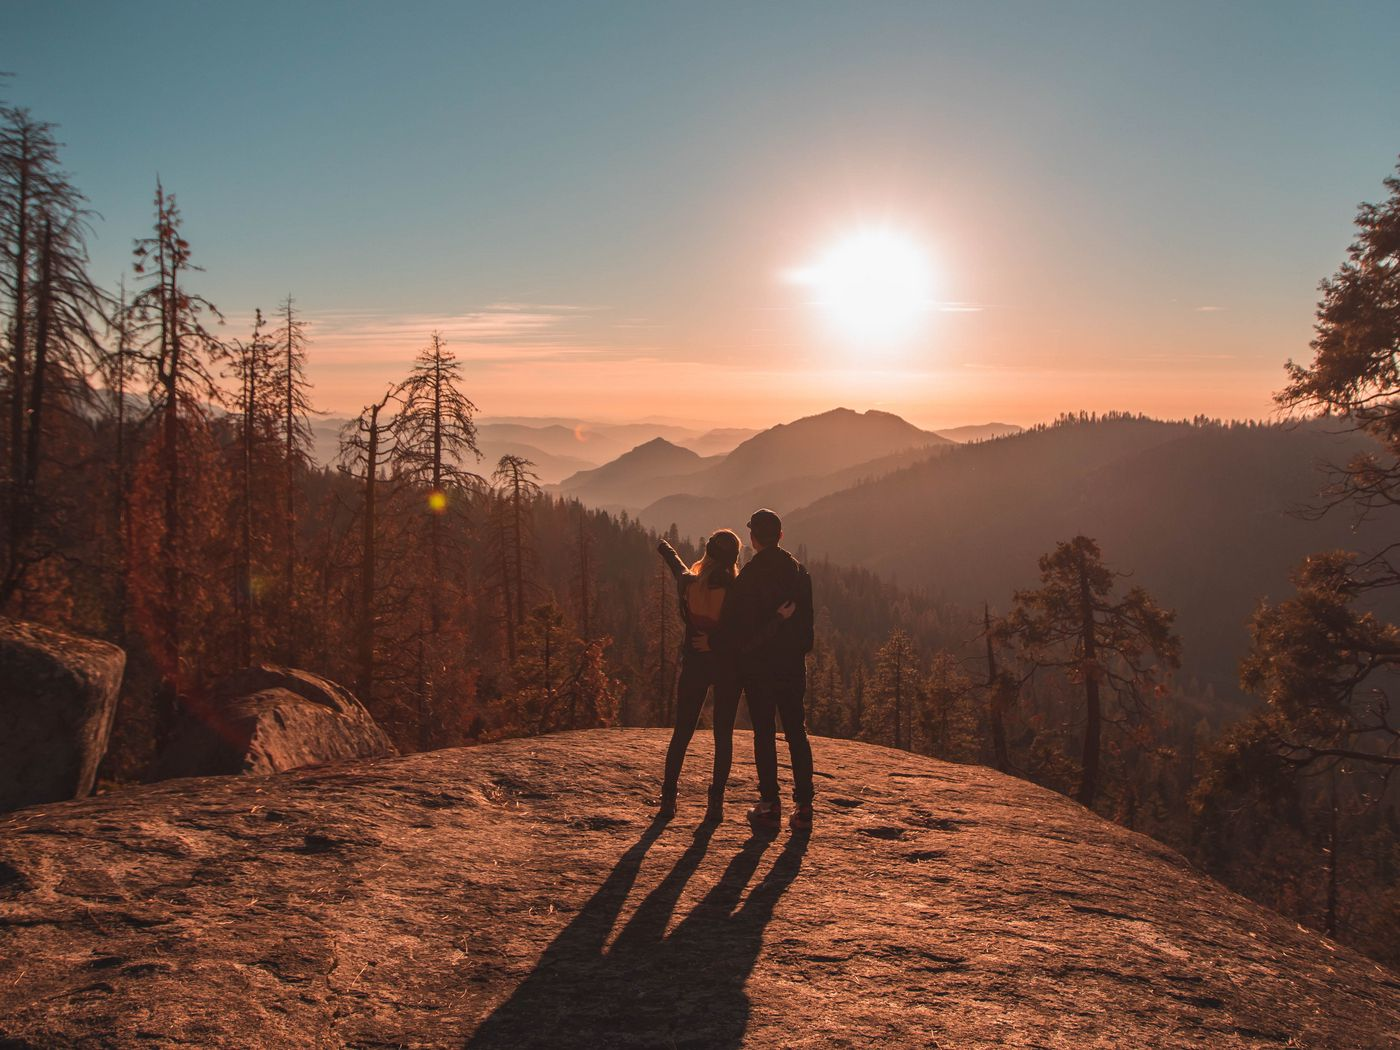 1400x1050 Wallpaper couple, mountains, travel, sunset, sequoia national park, united states